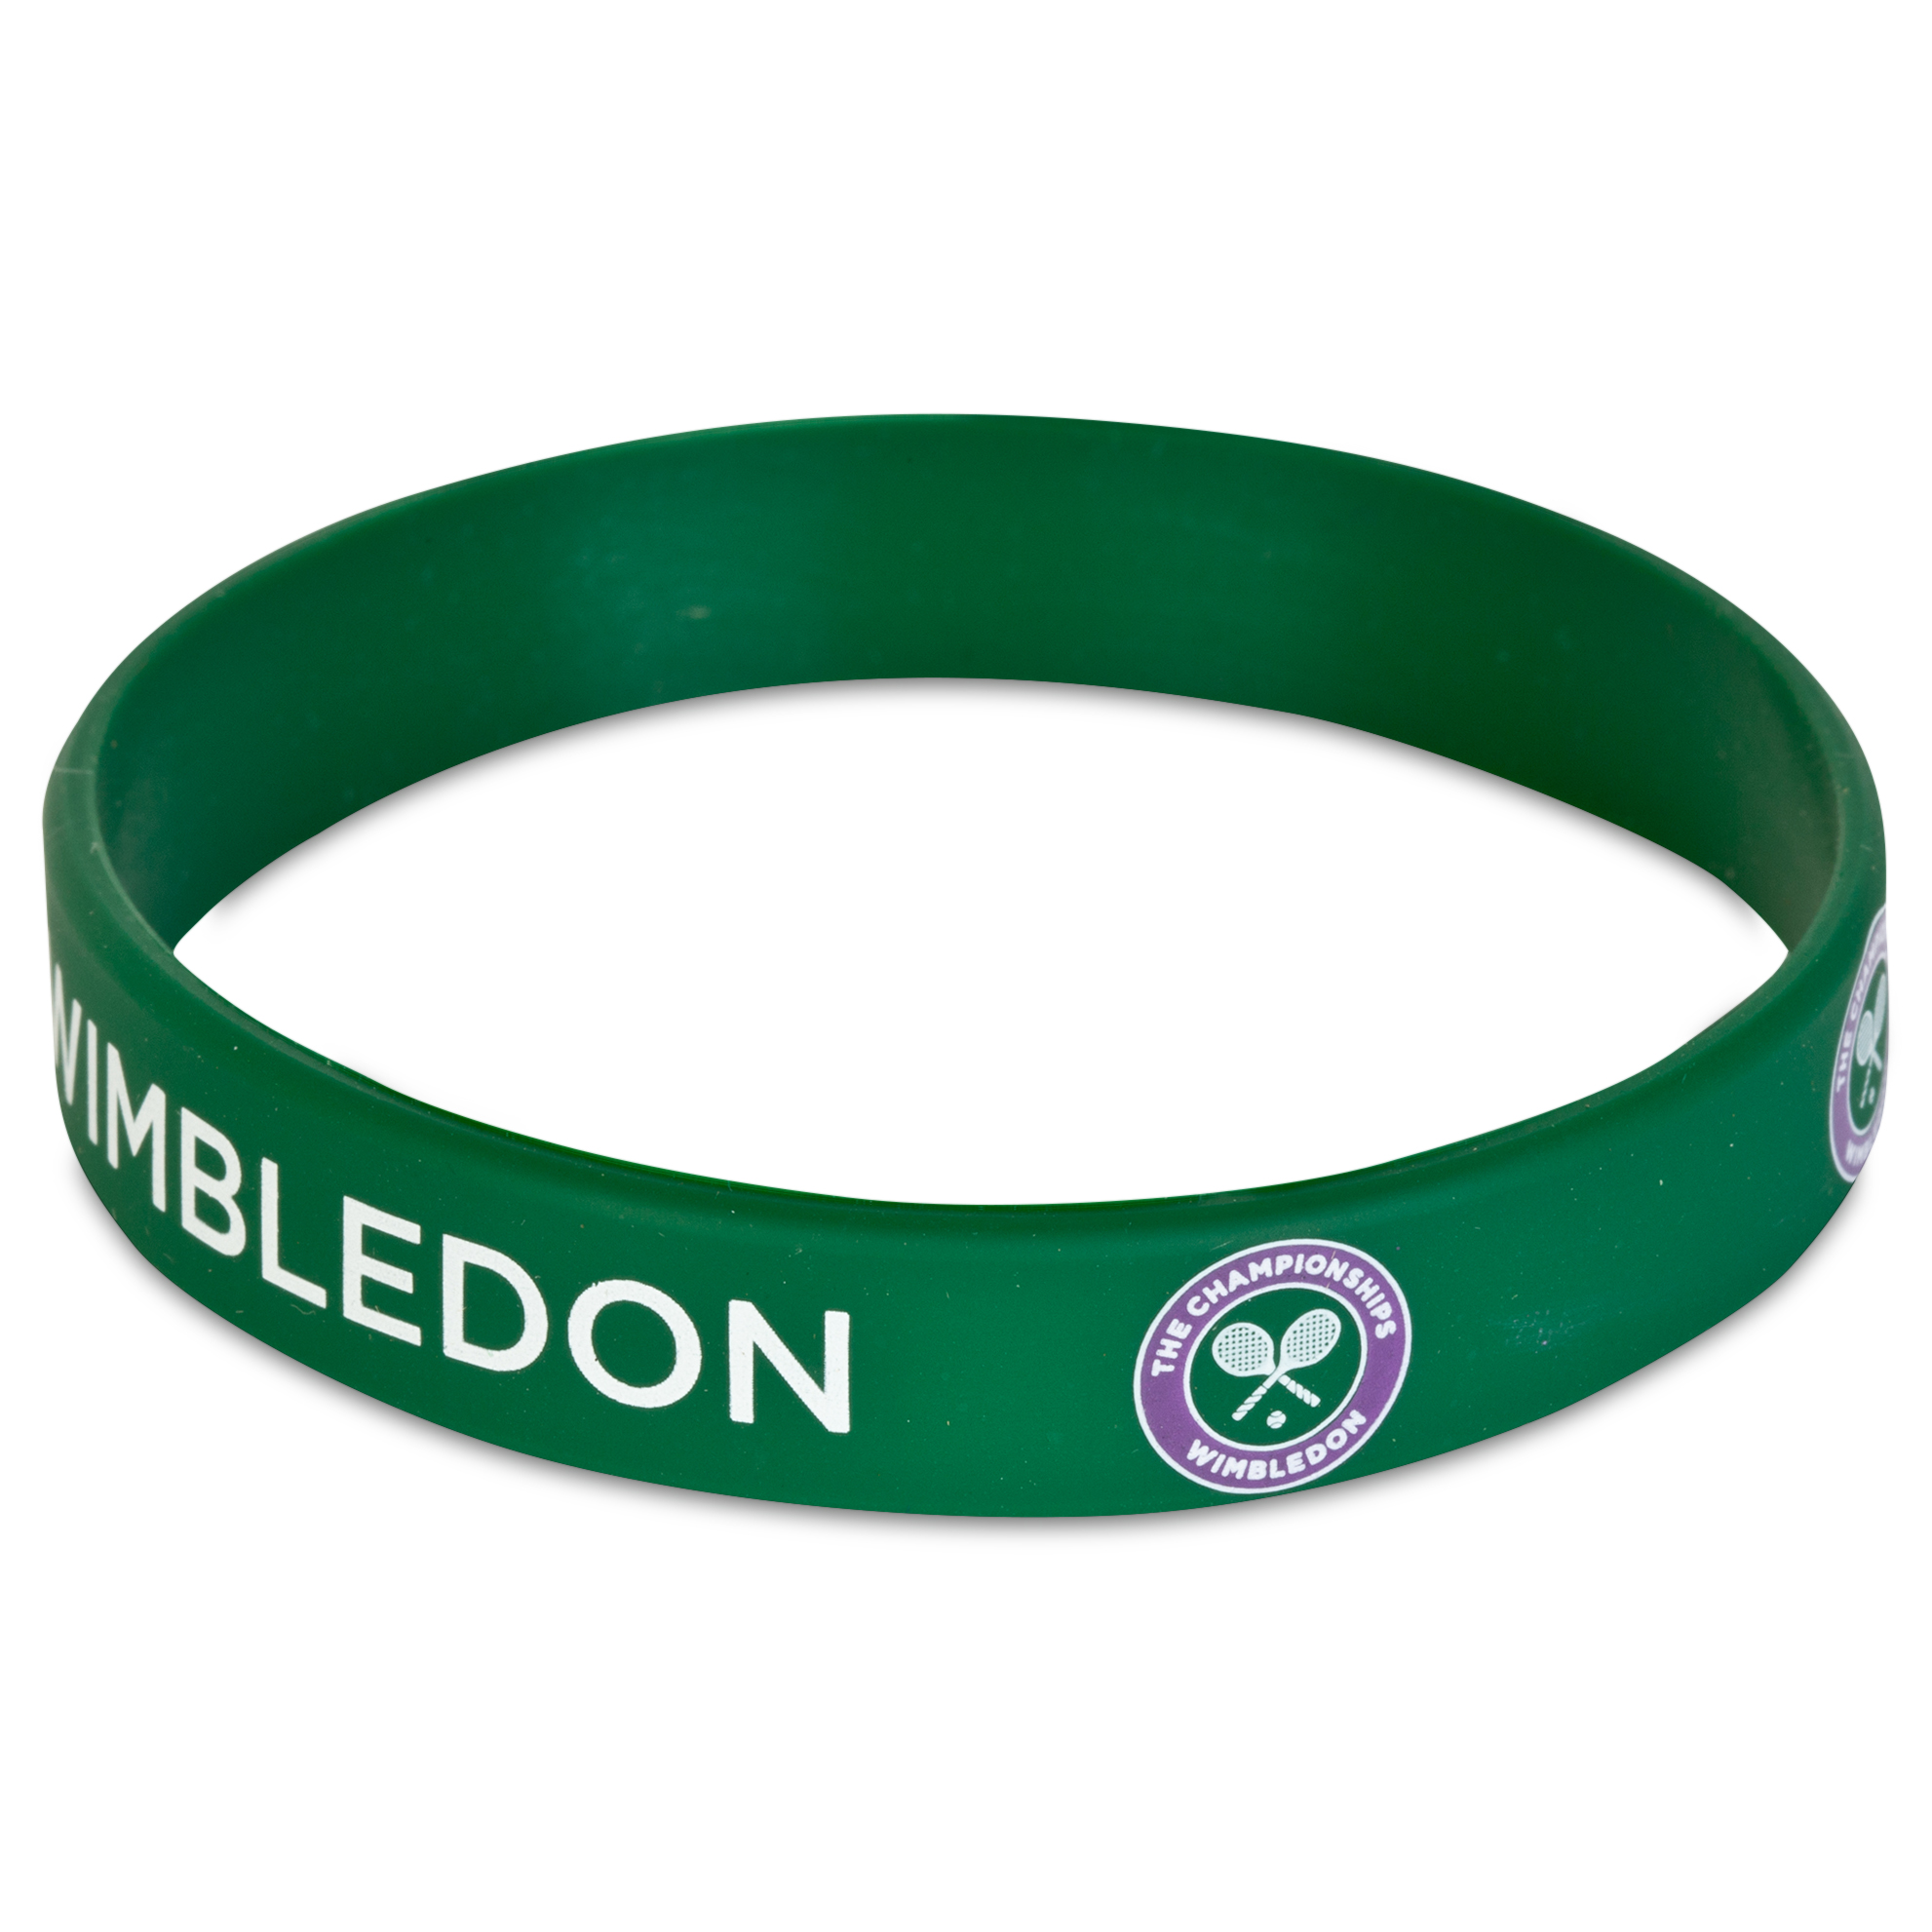 Wimbledon Wrist Band - Green